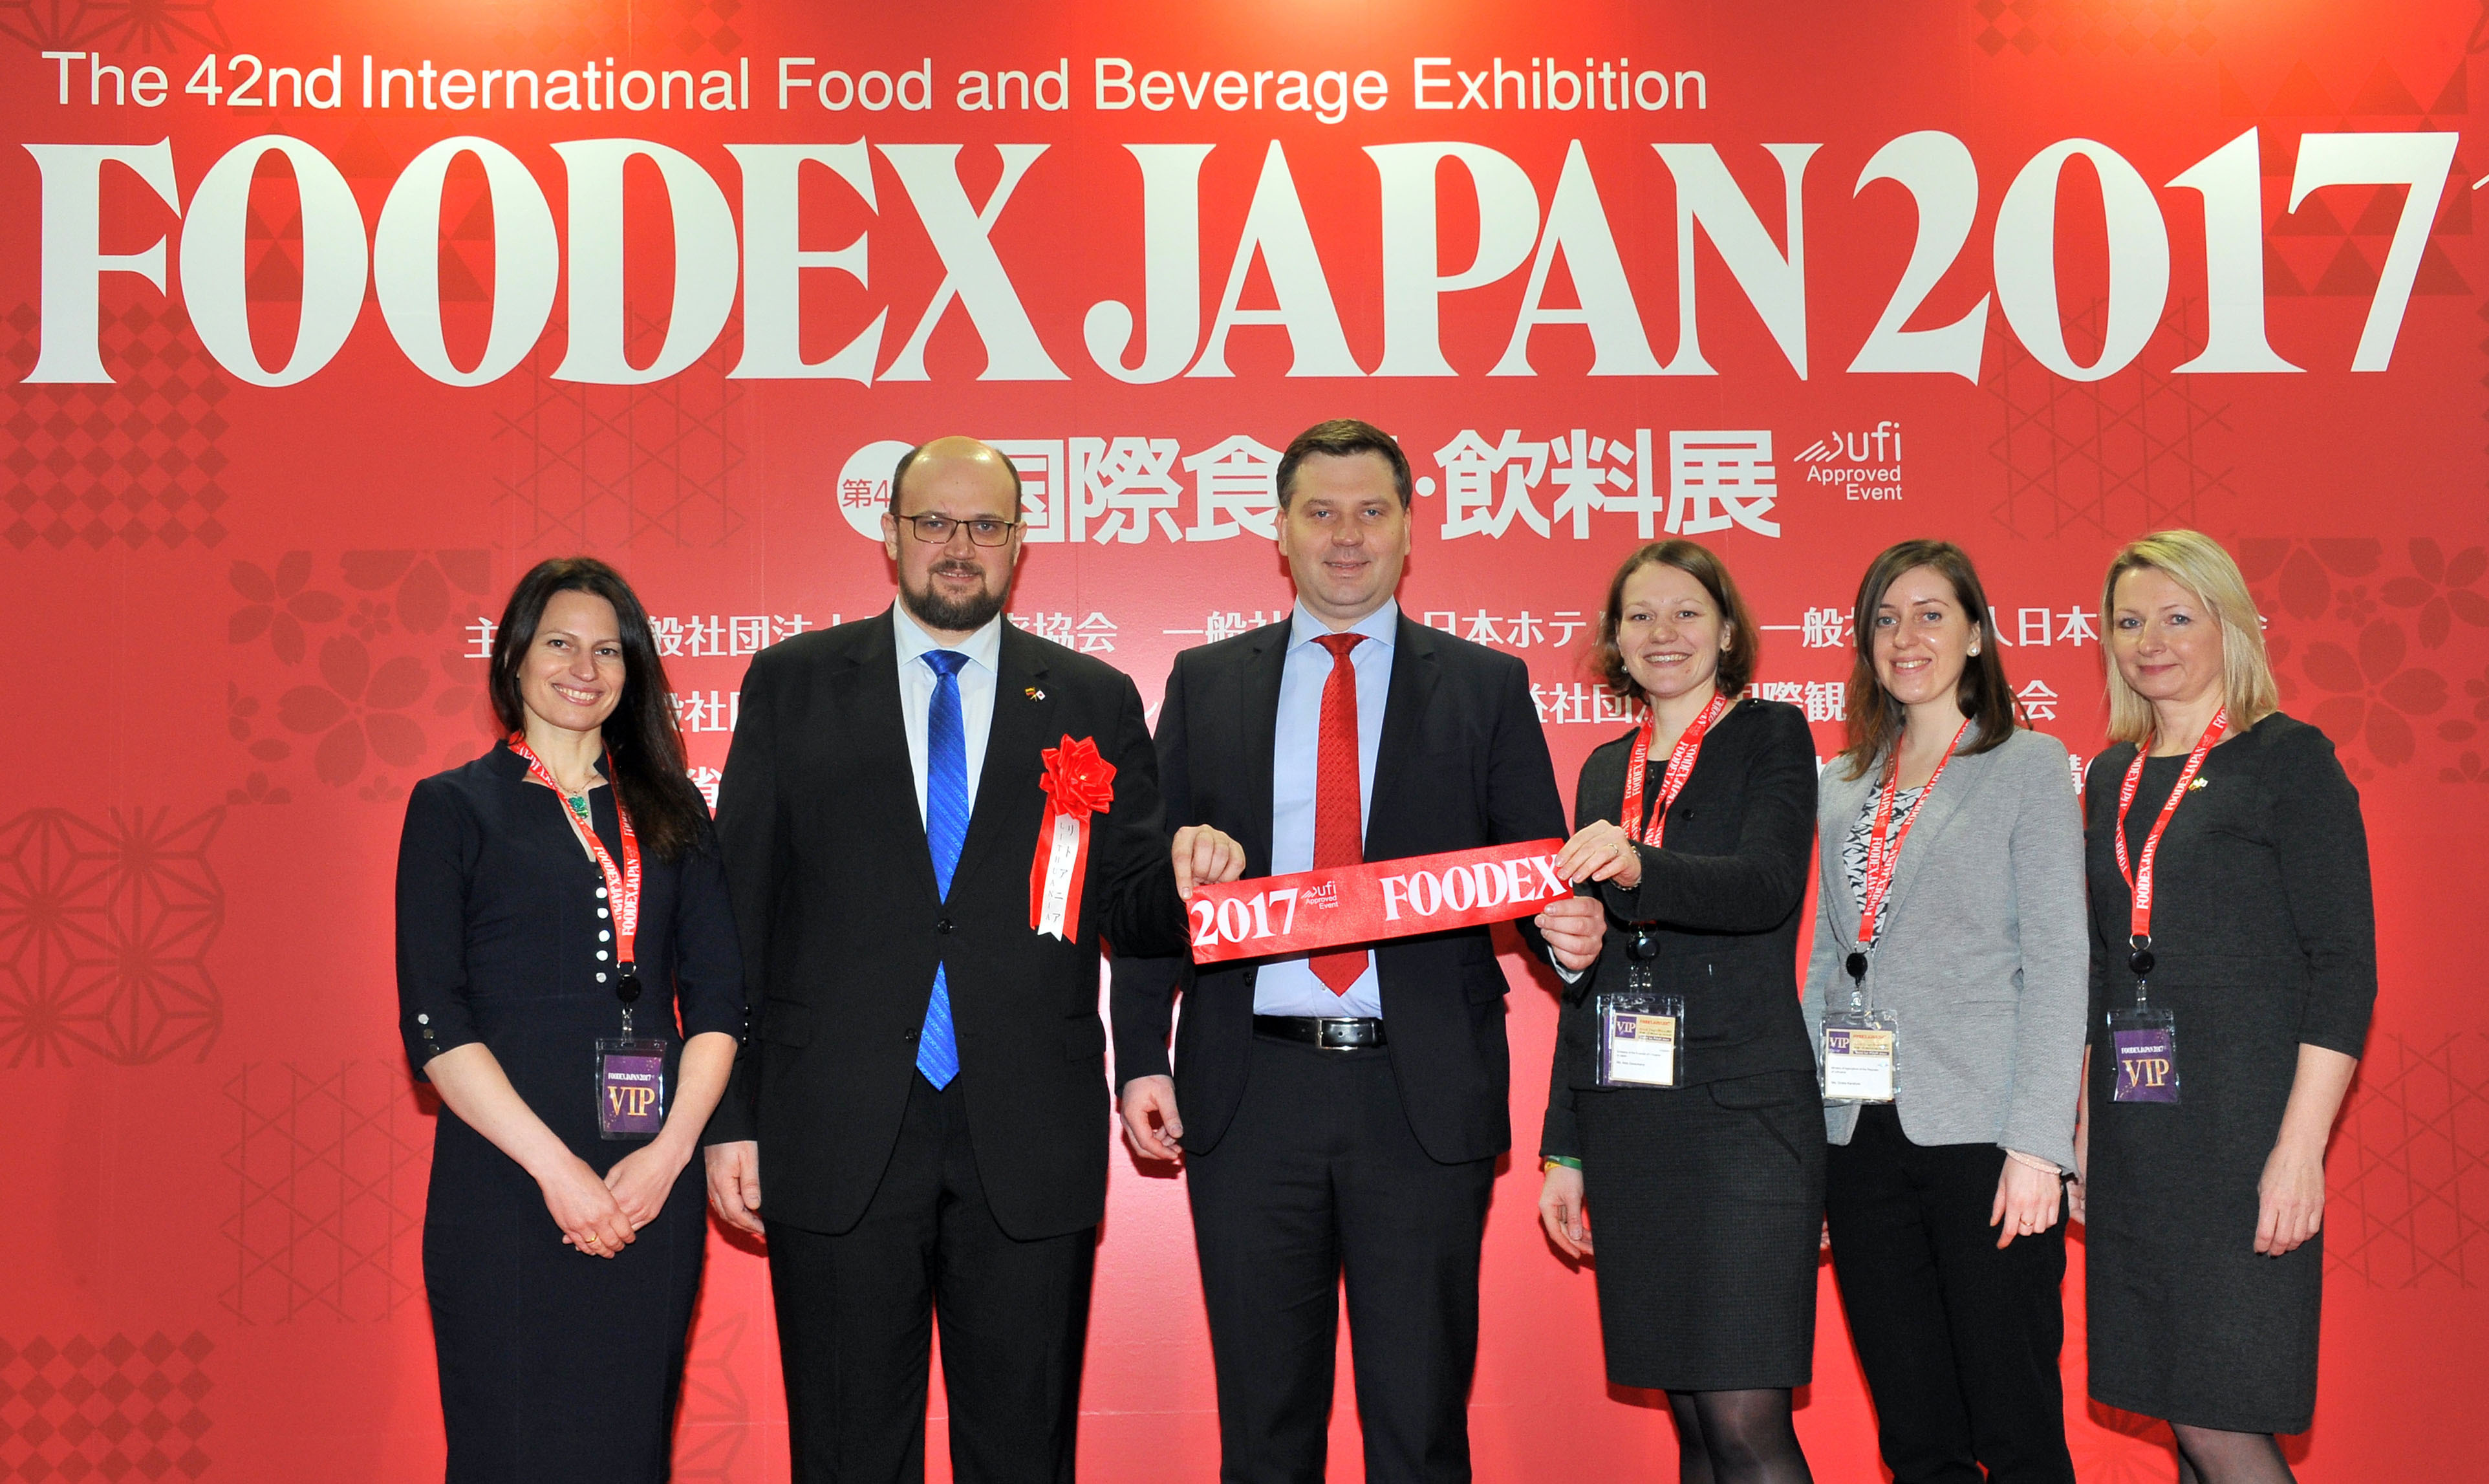 (from left) Galina Meilunas, wife of the Lithuanian ambassador to Japan; Lithuania's acting Director of State Food and Veterinary Service Deividas Kliucinskas; Lithuania's Vice Minister of Agriculture Rolandas Taraskevicius; and others pose after the Foodex Japan 2017 ribbon-cutting ceremony. | YOSHIAKI MIURA